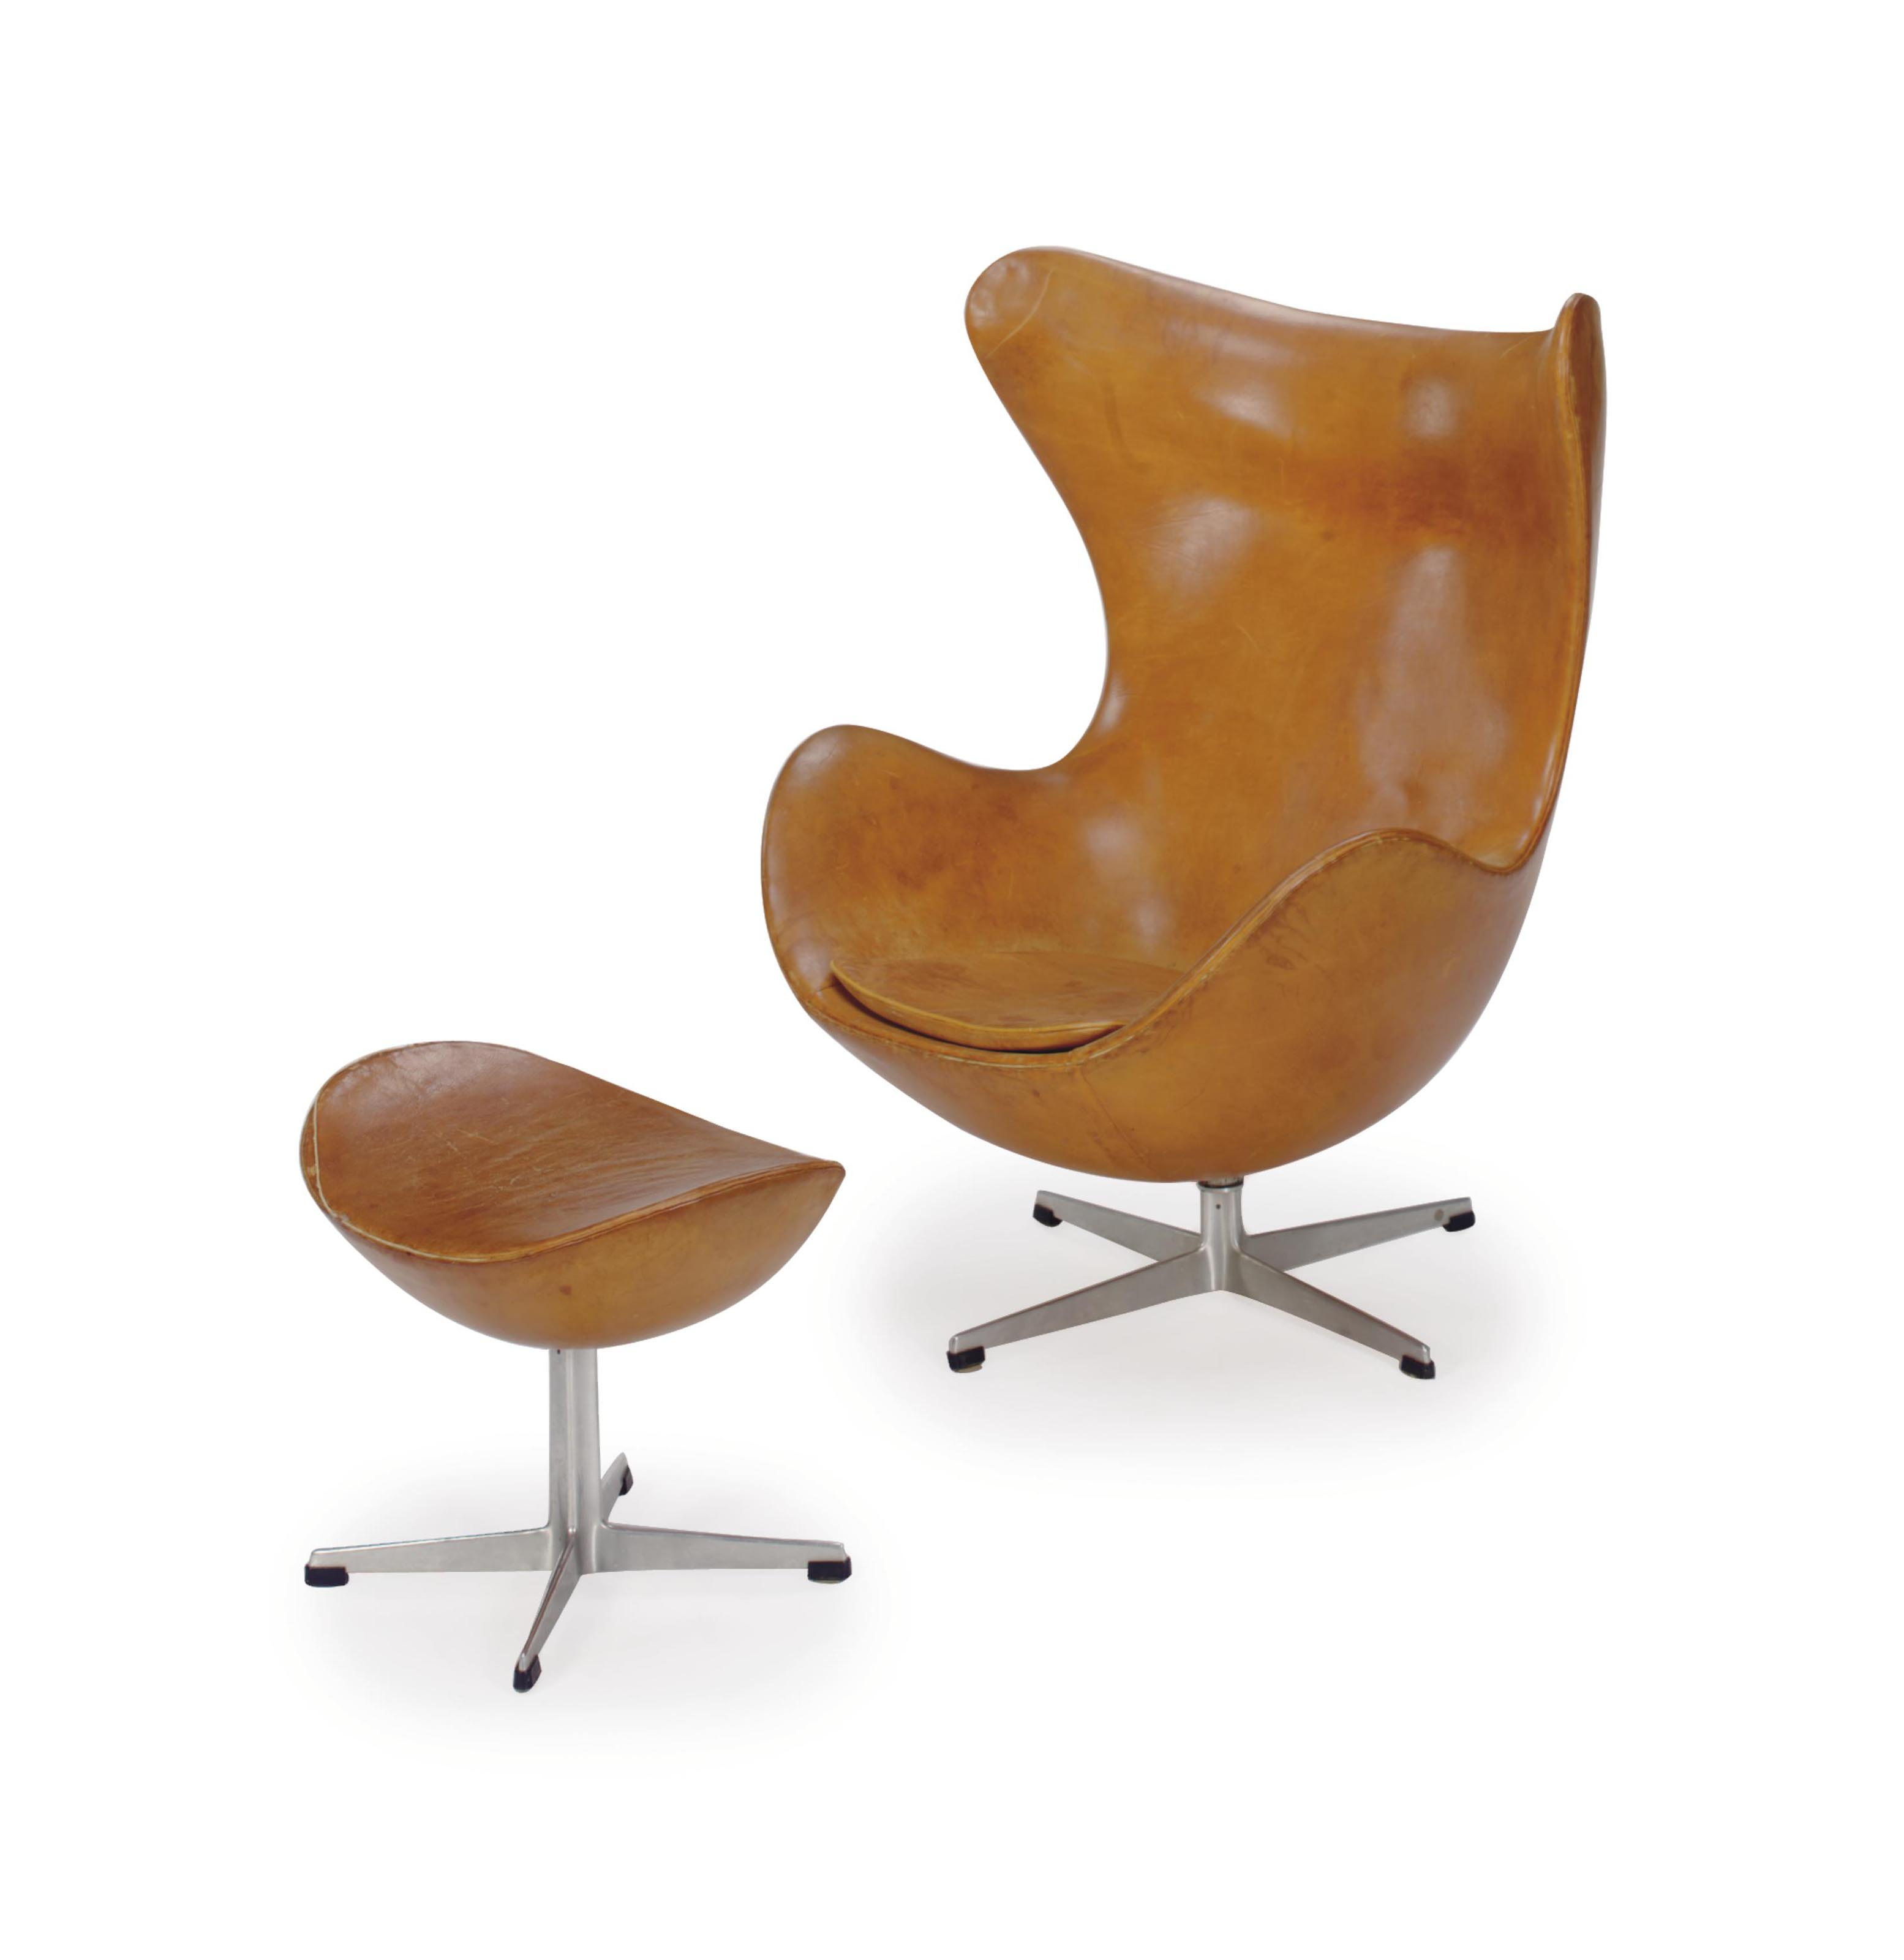 Leather Upholstered Lounge An Aluminum And Leather Upholstered 39egg 39 Lounge Chair And